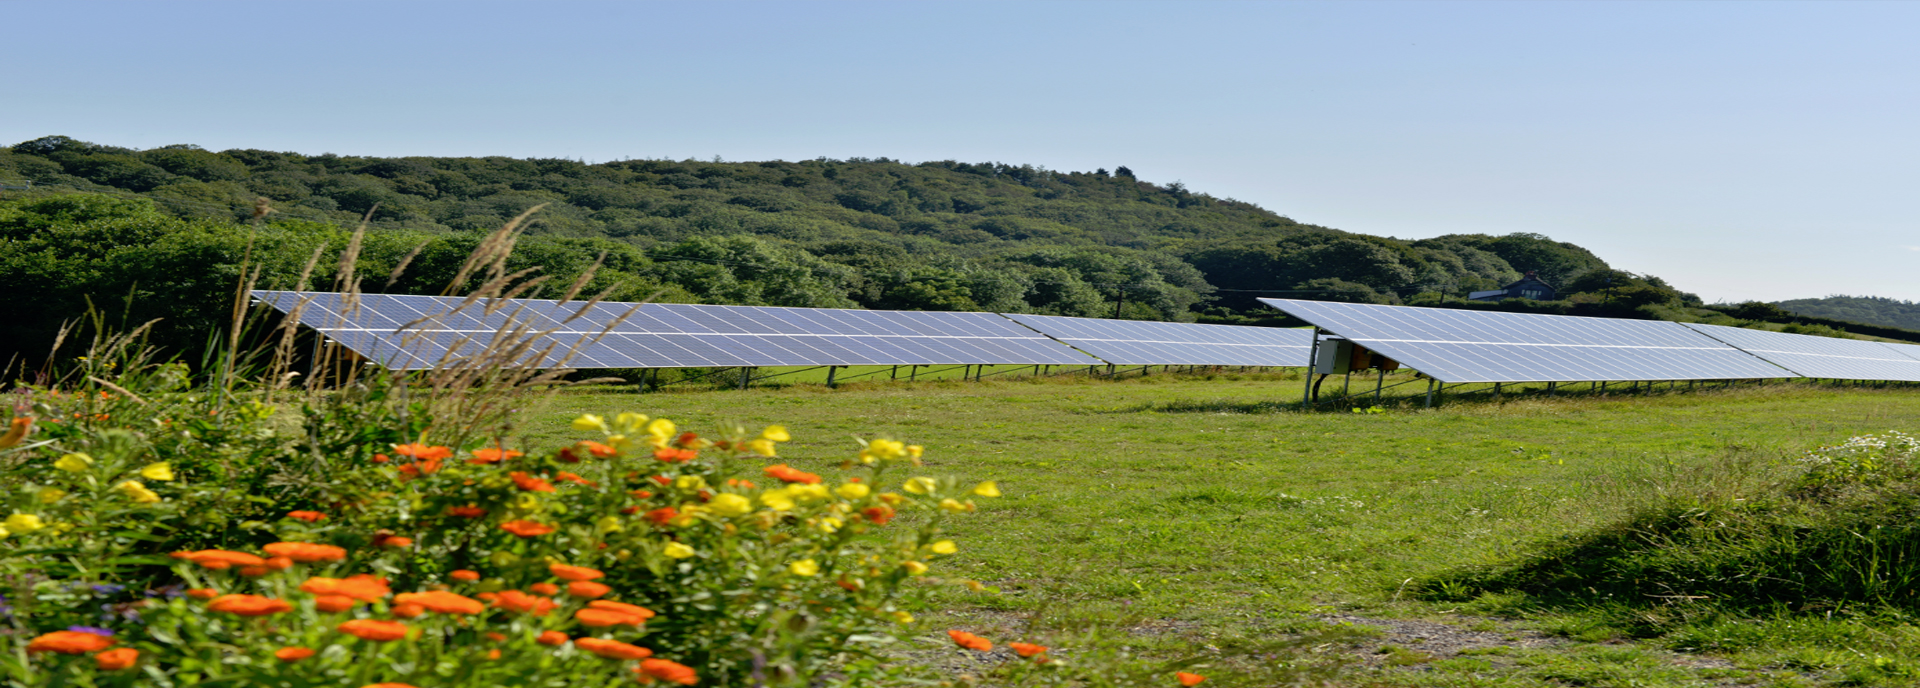 Ground Mount Solar PV for Landowners